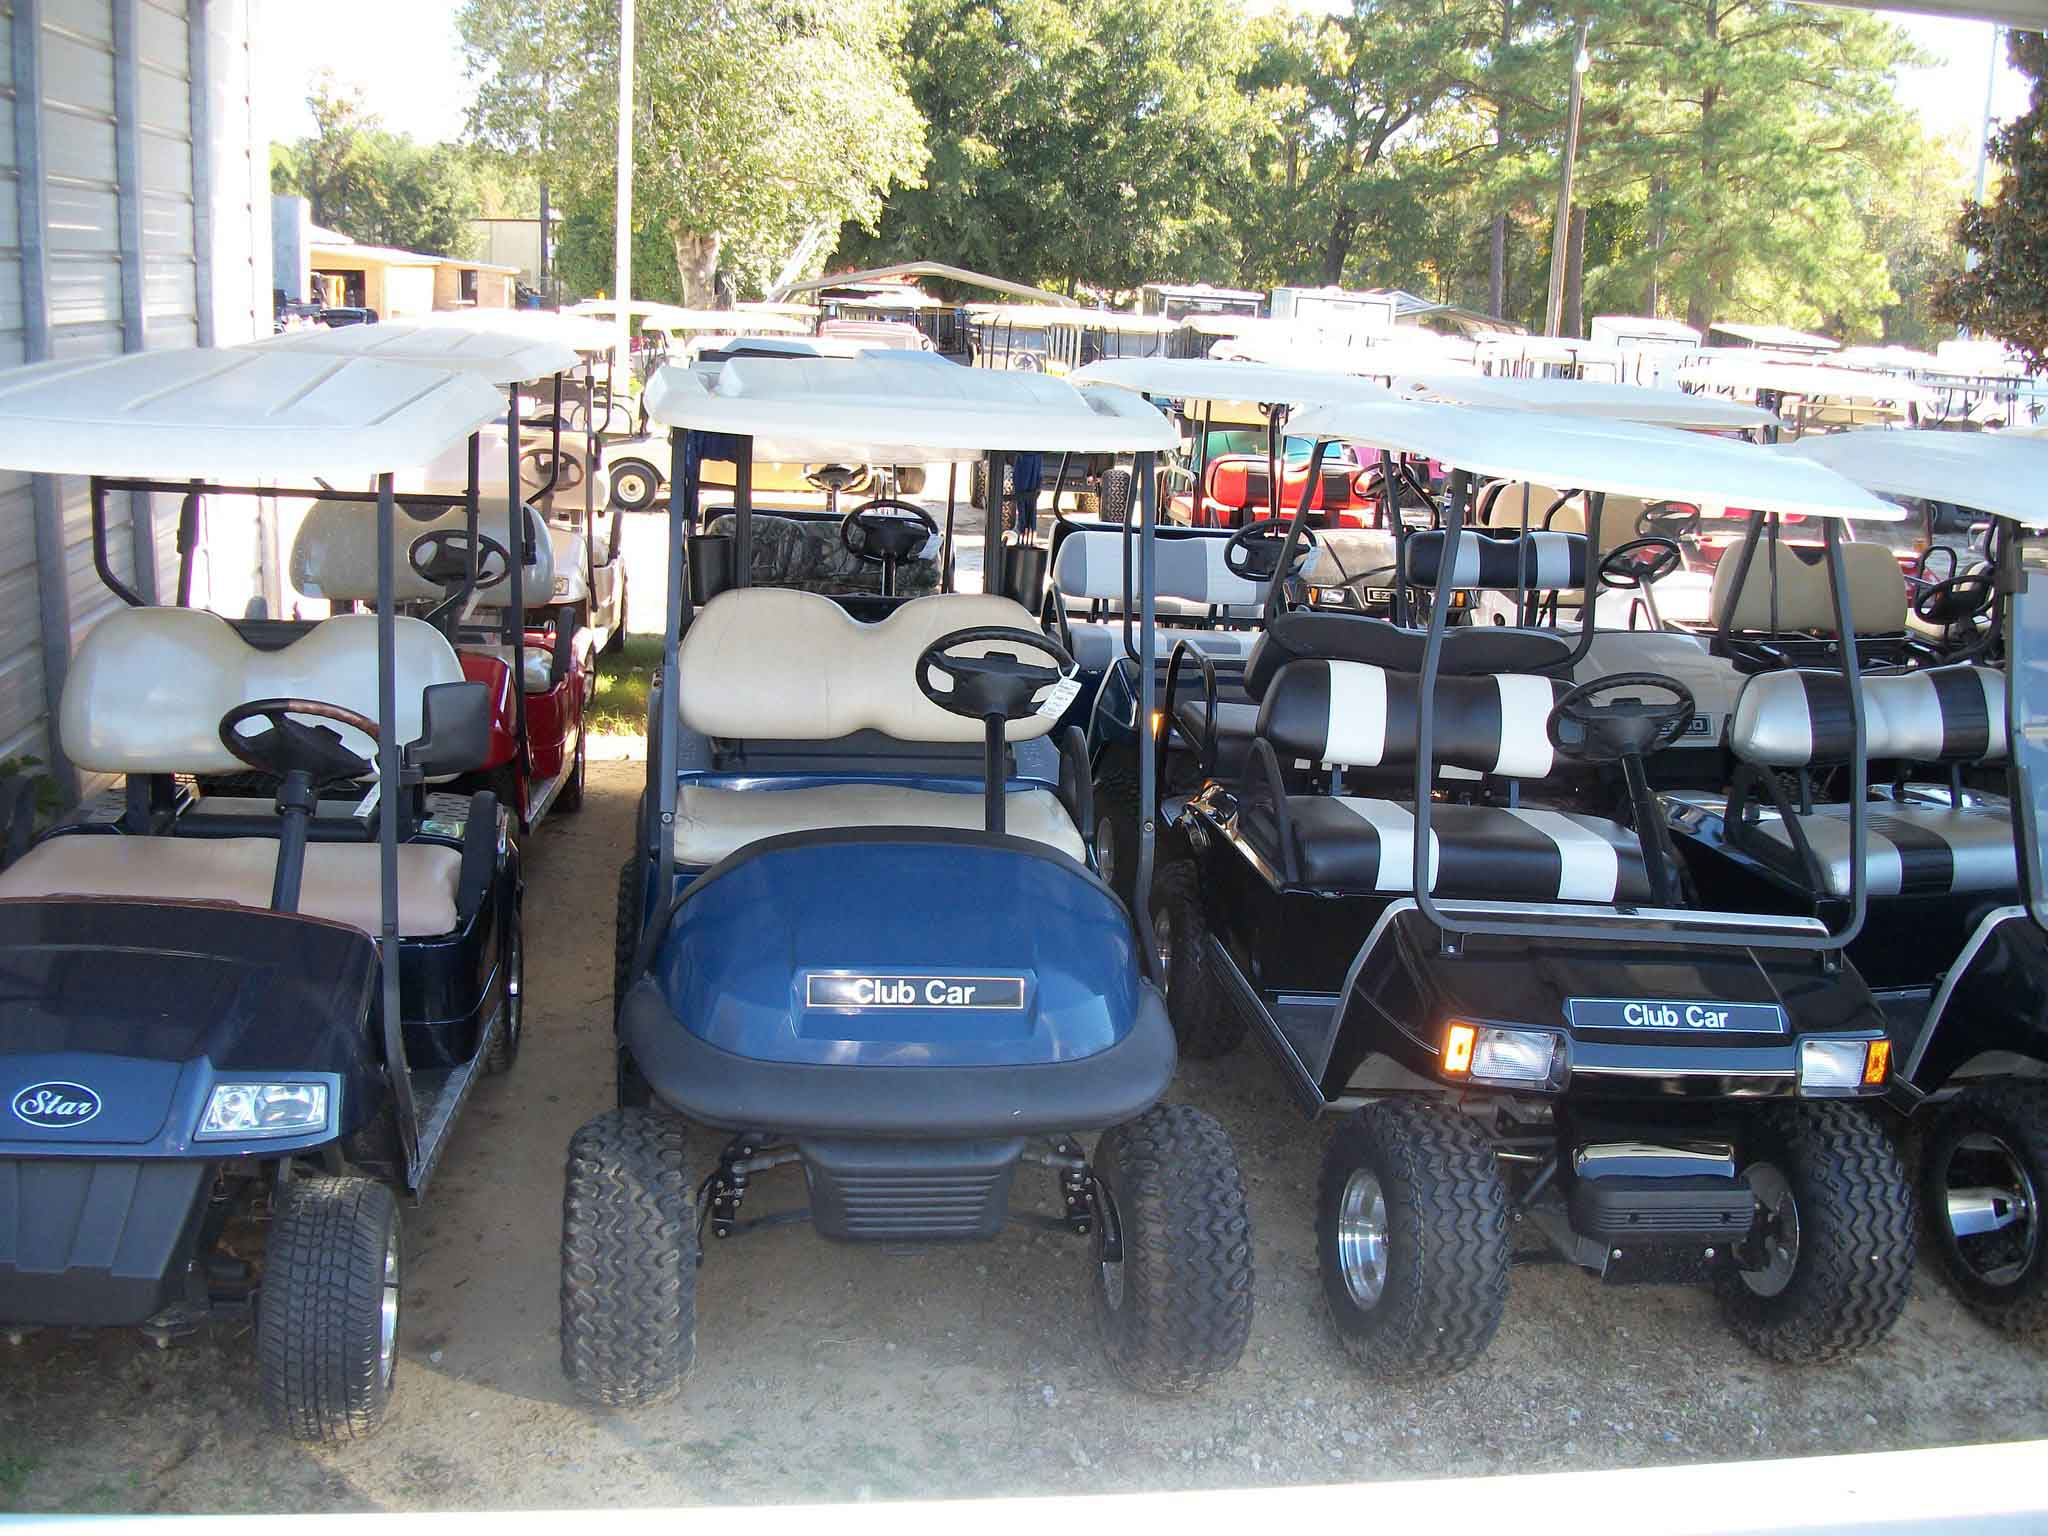 Lot with many Golf cars